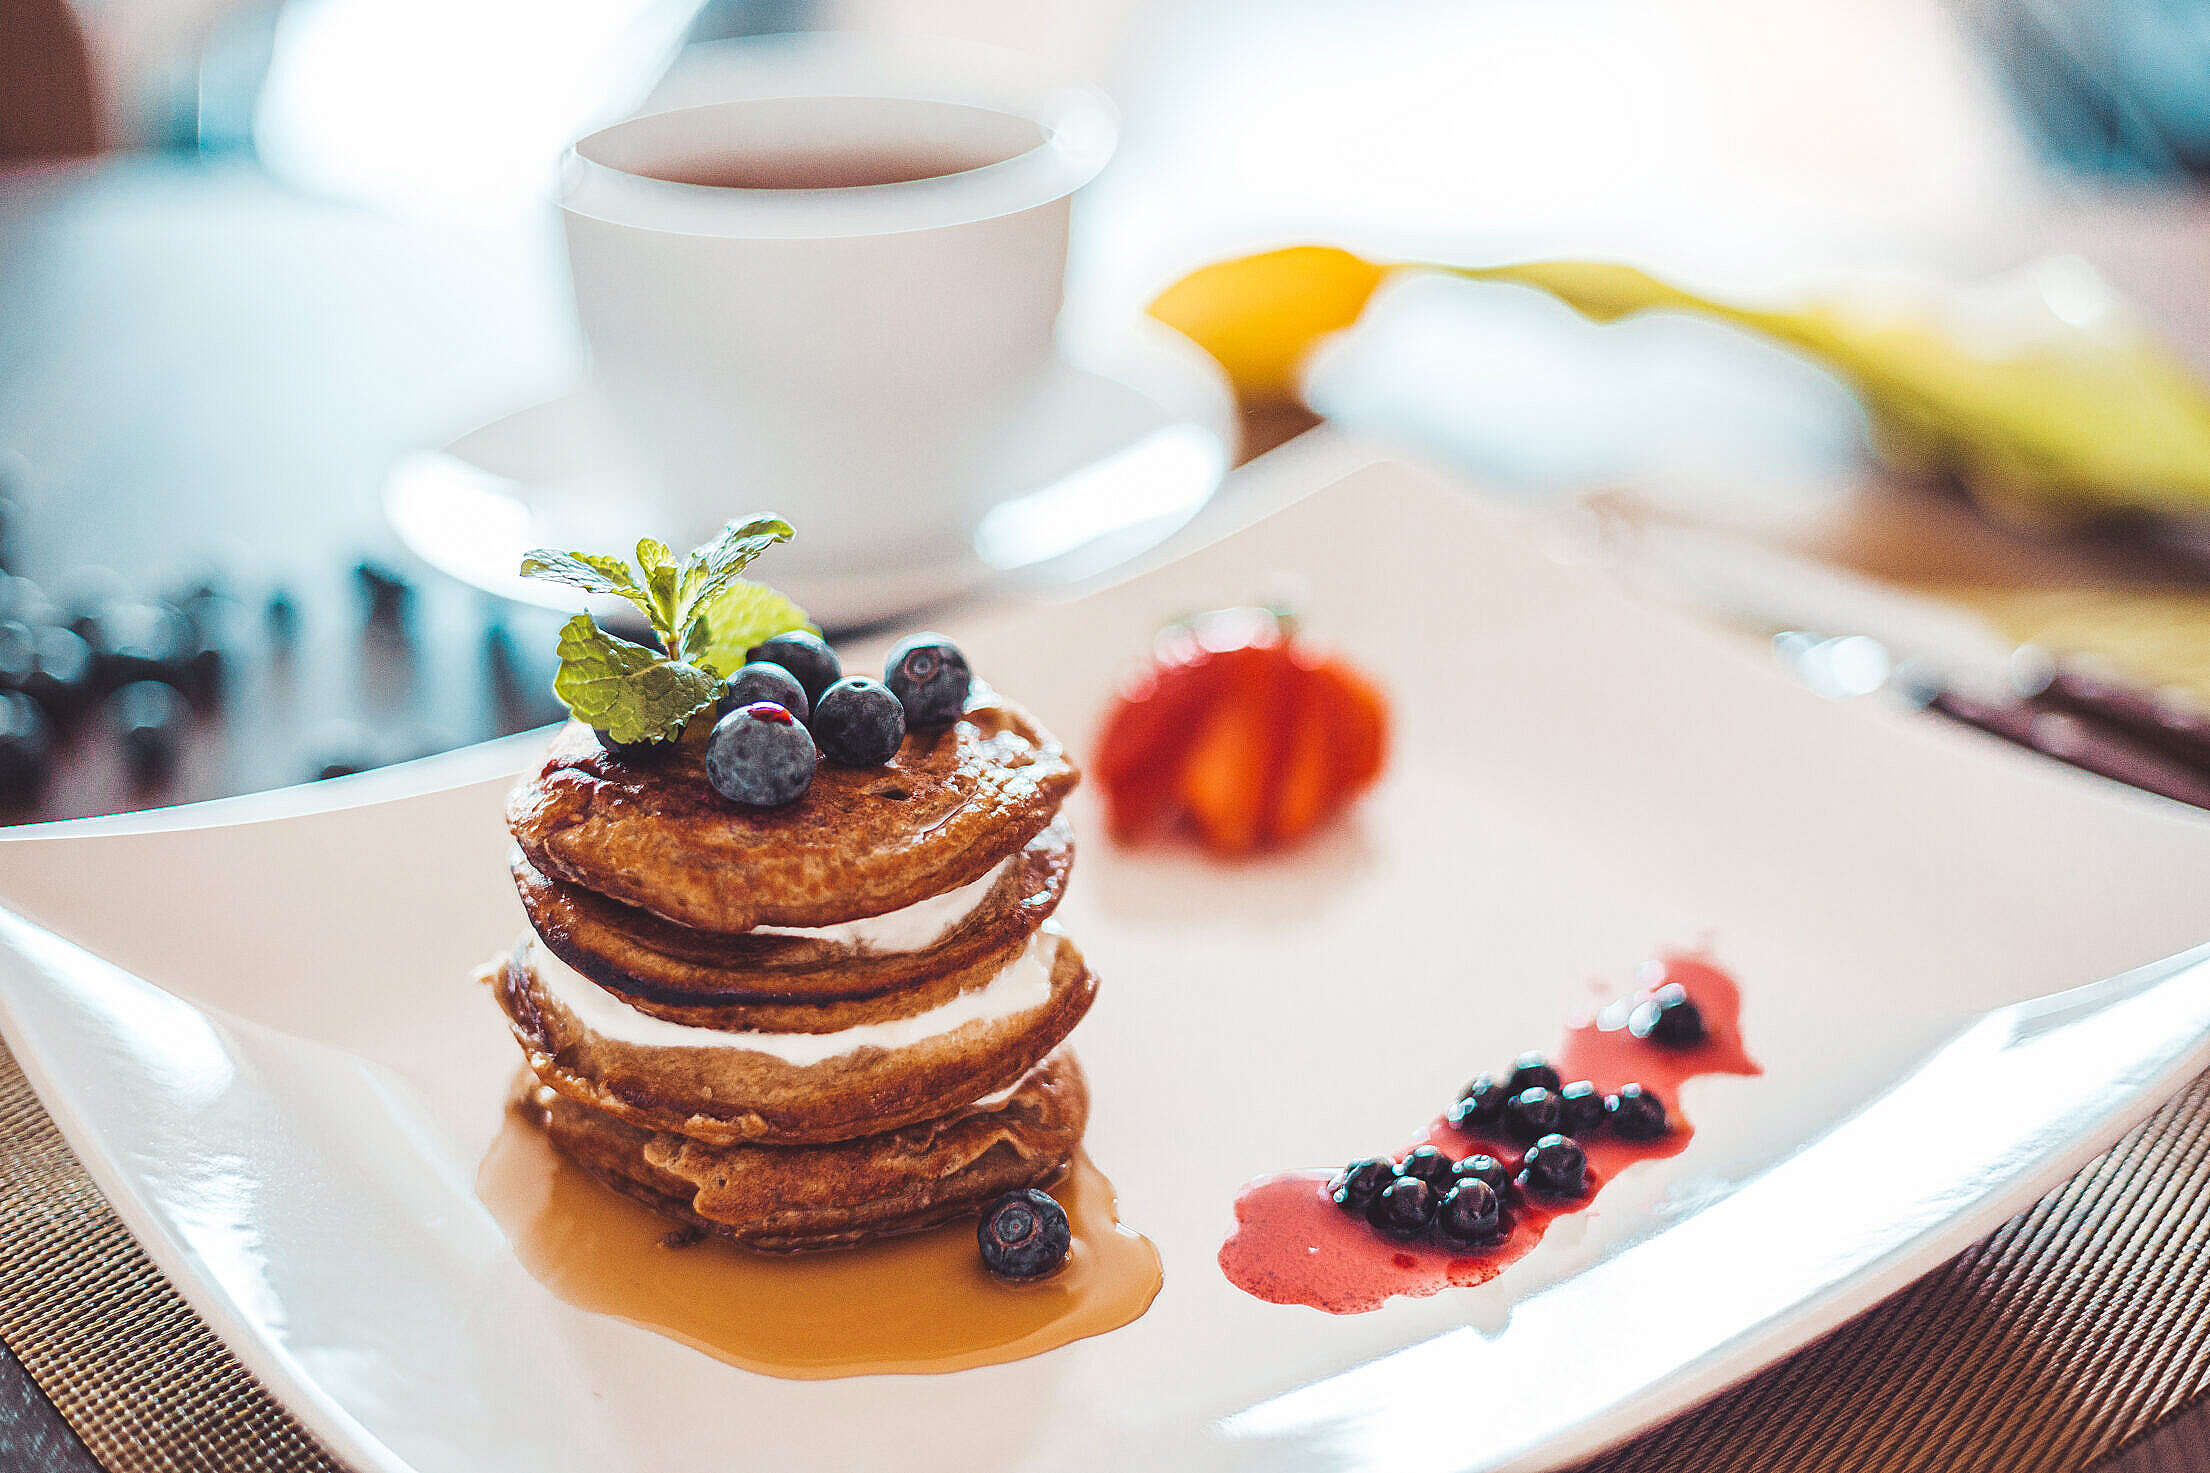 Healthy Pancakes with Cottage Cheese and Blueberries Free Stock Photo